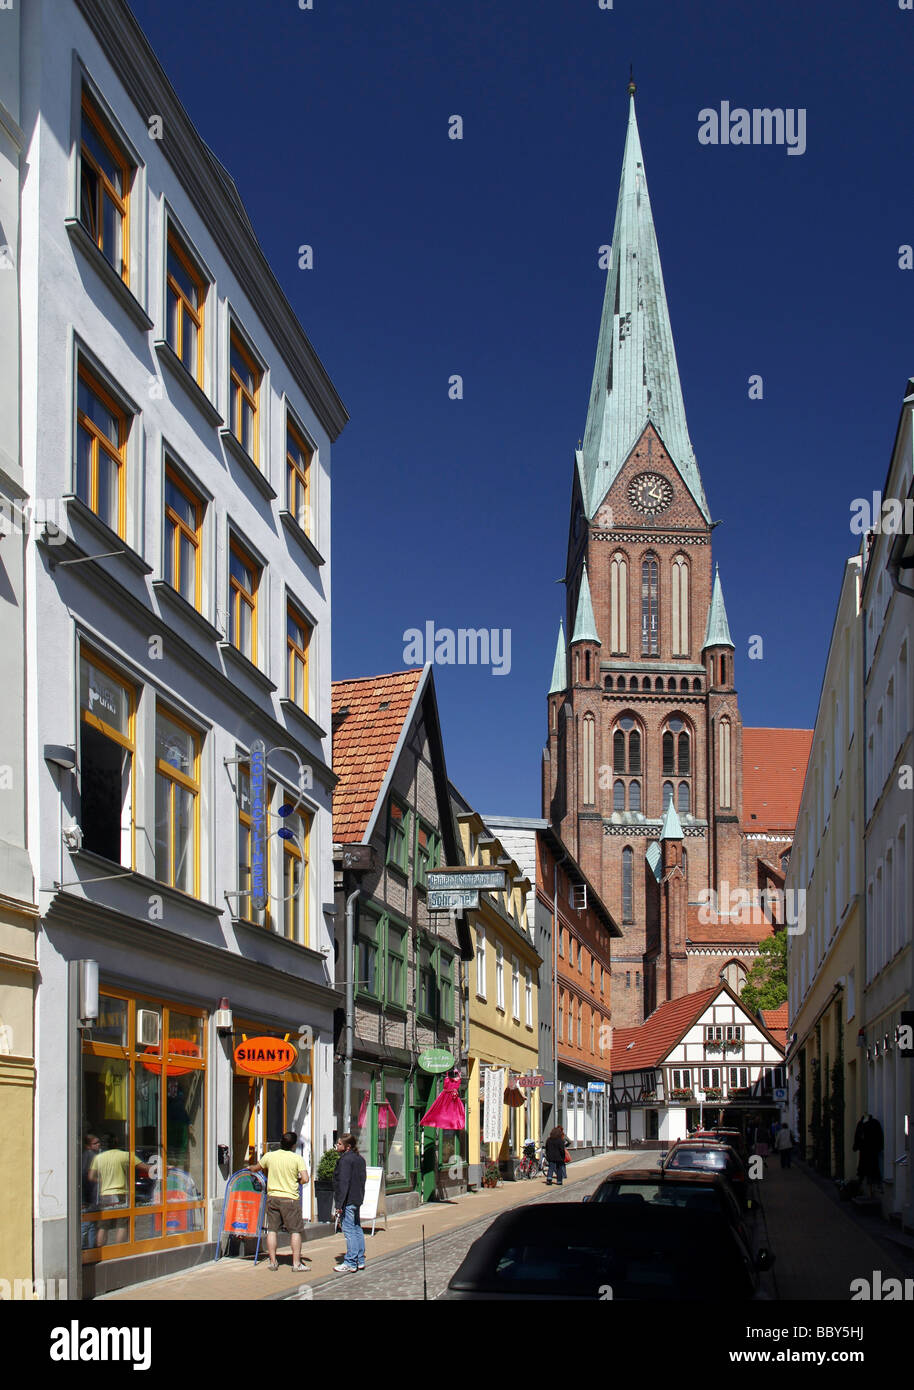 Lane in the old town with view on the Schweriner Dom cathedral, Schwerin, Mecklenburg-Western Pomerania, Germany, Stock Photo